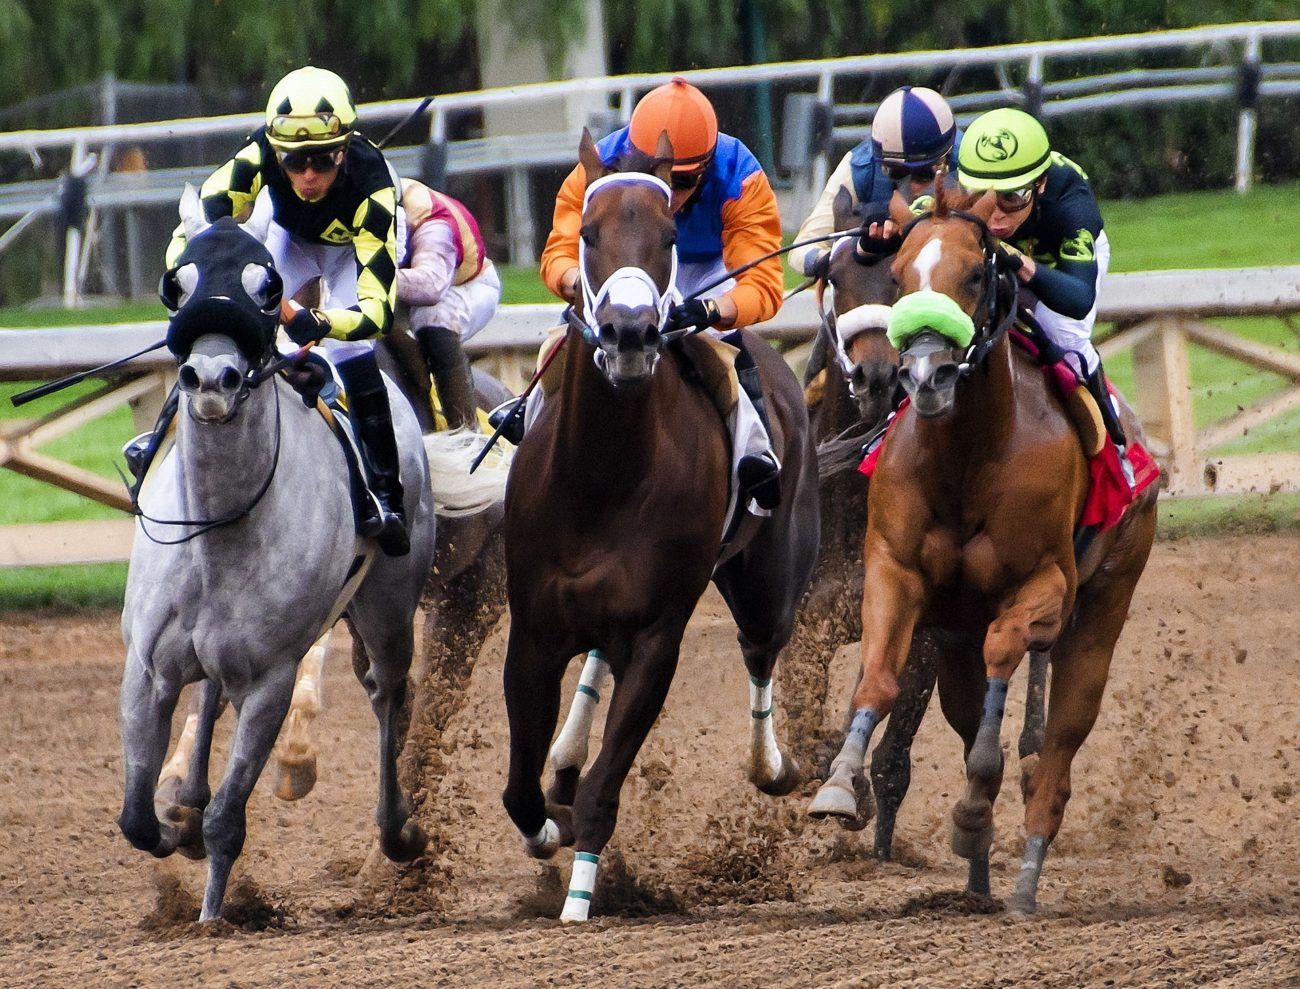 off track horse betting illinois lottery